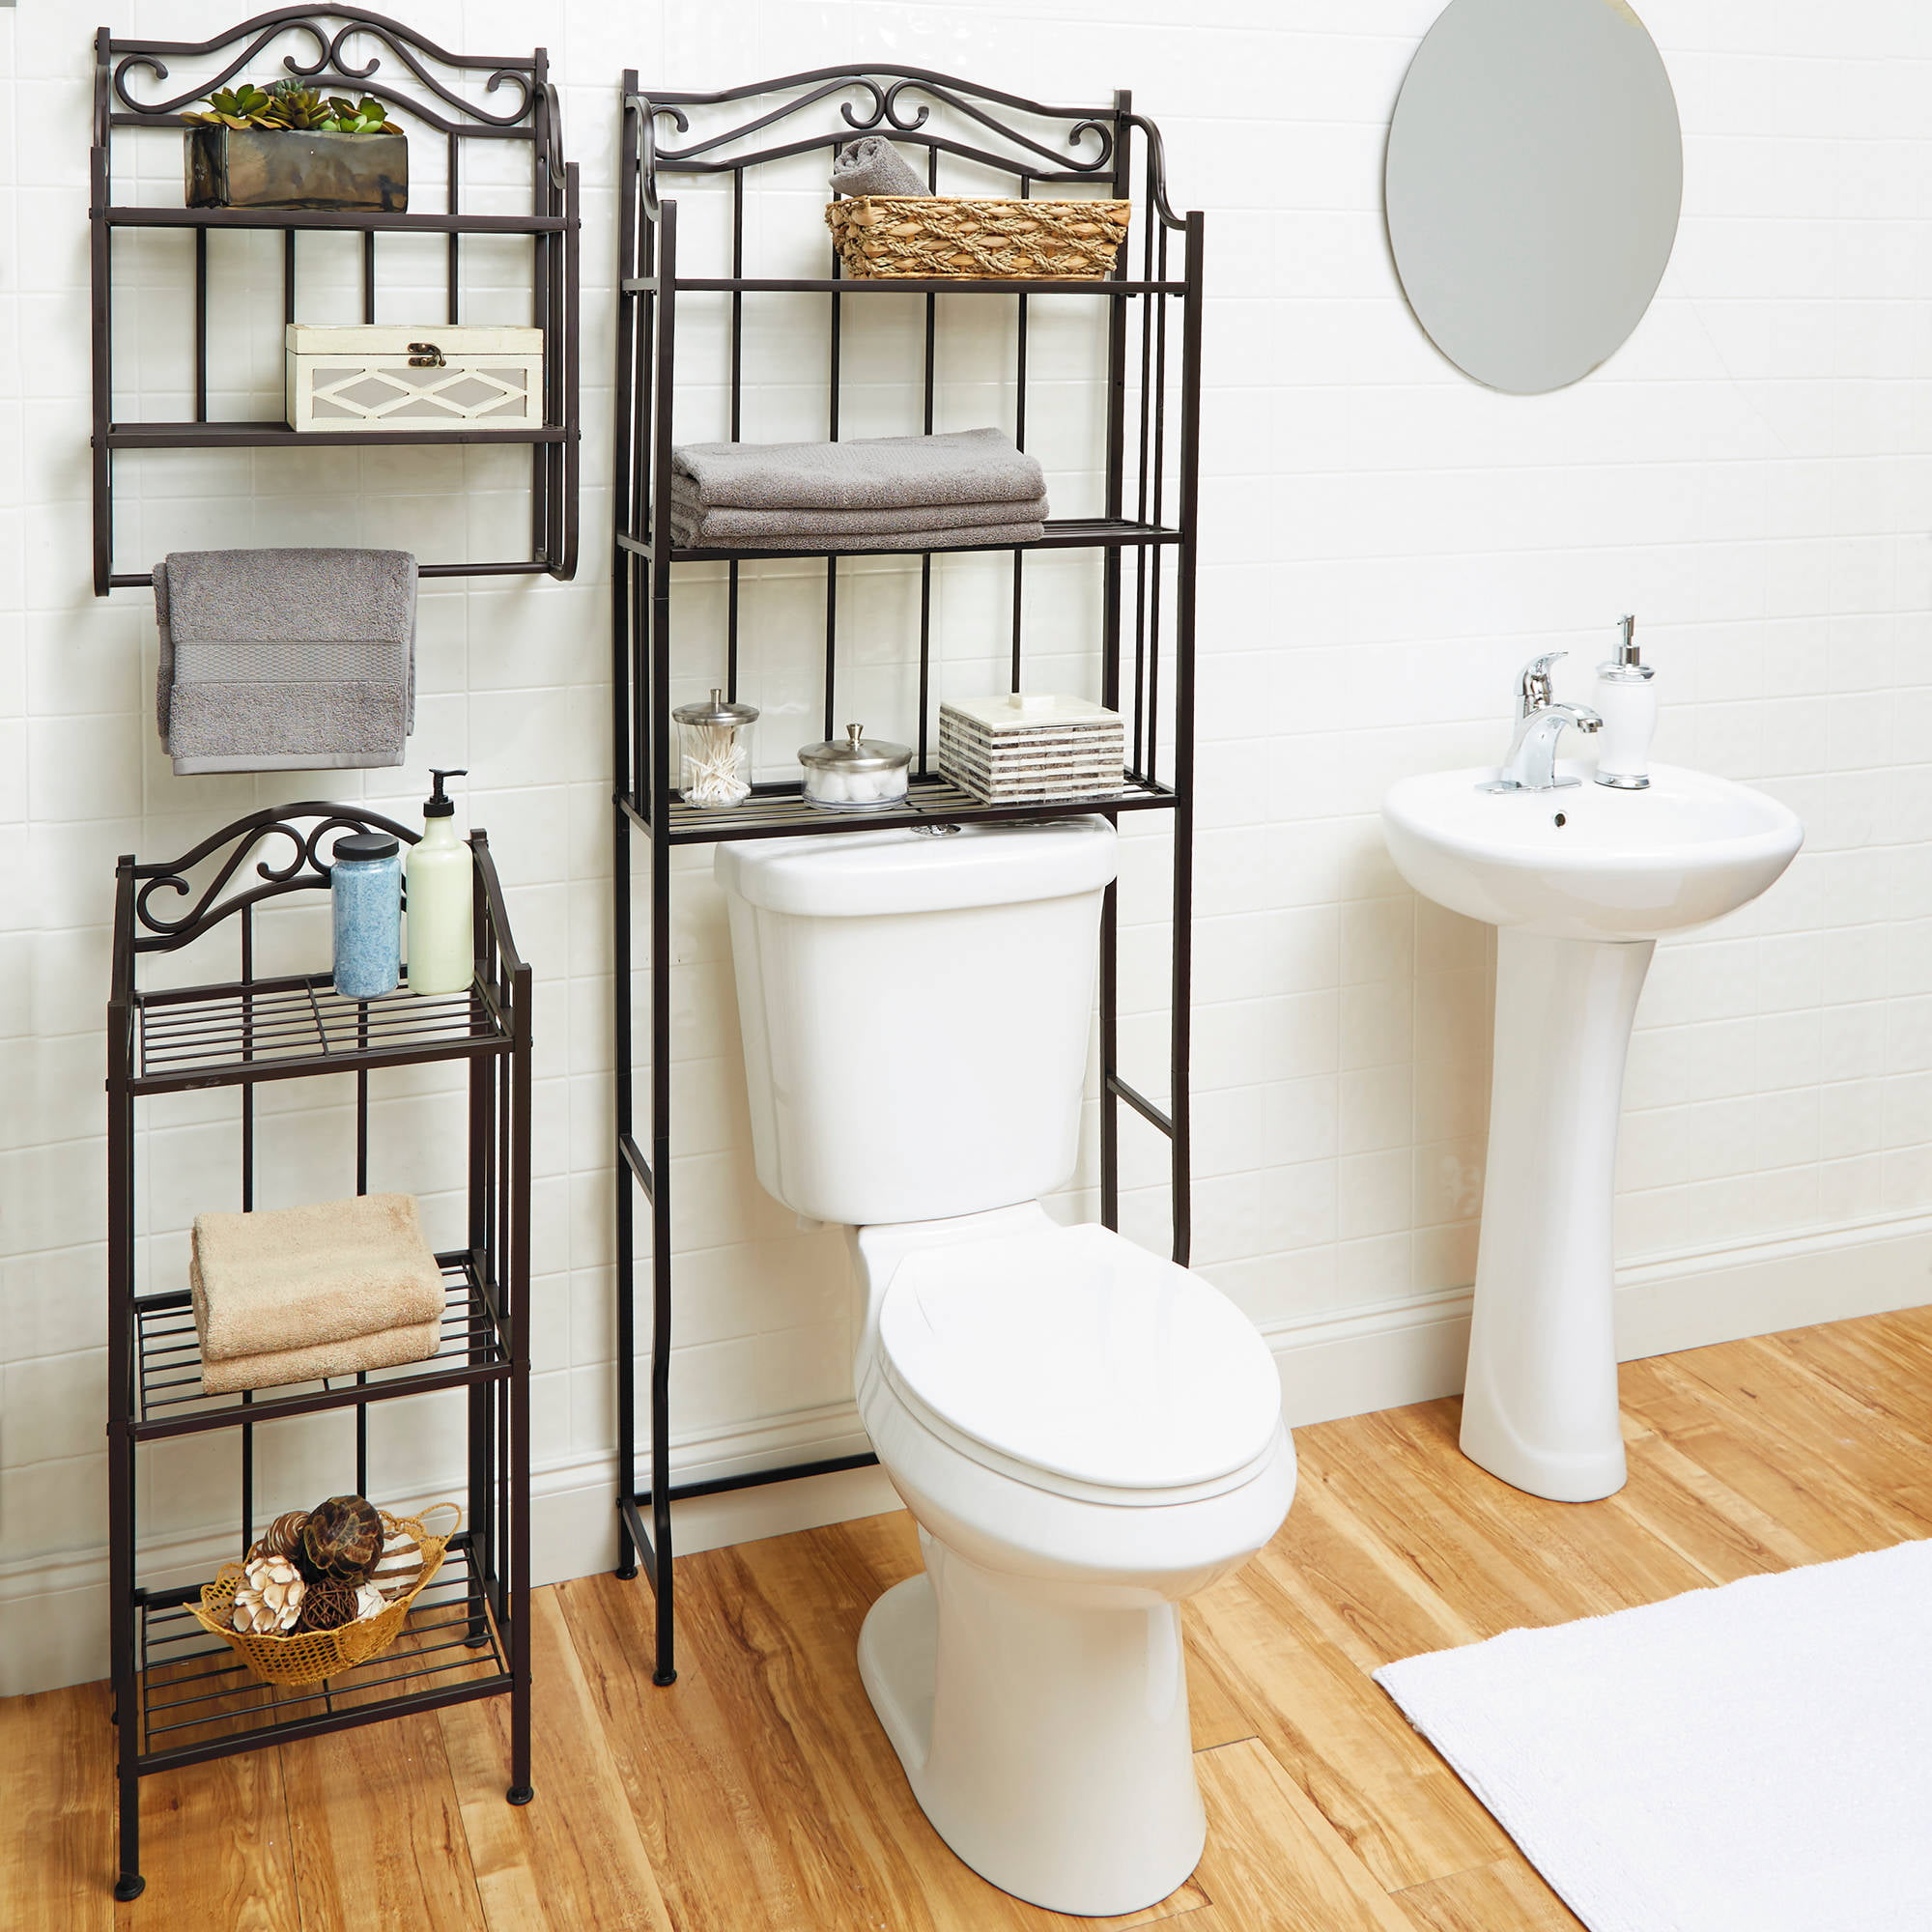 chapter bathroom storage wall shelf oil rubbed bronze finish walmartcom - Walmart Bathroom Storage